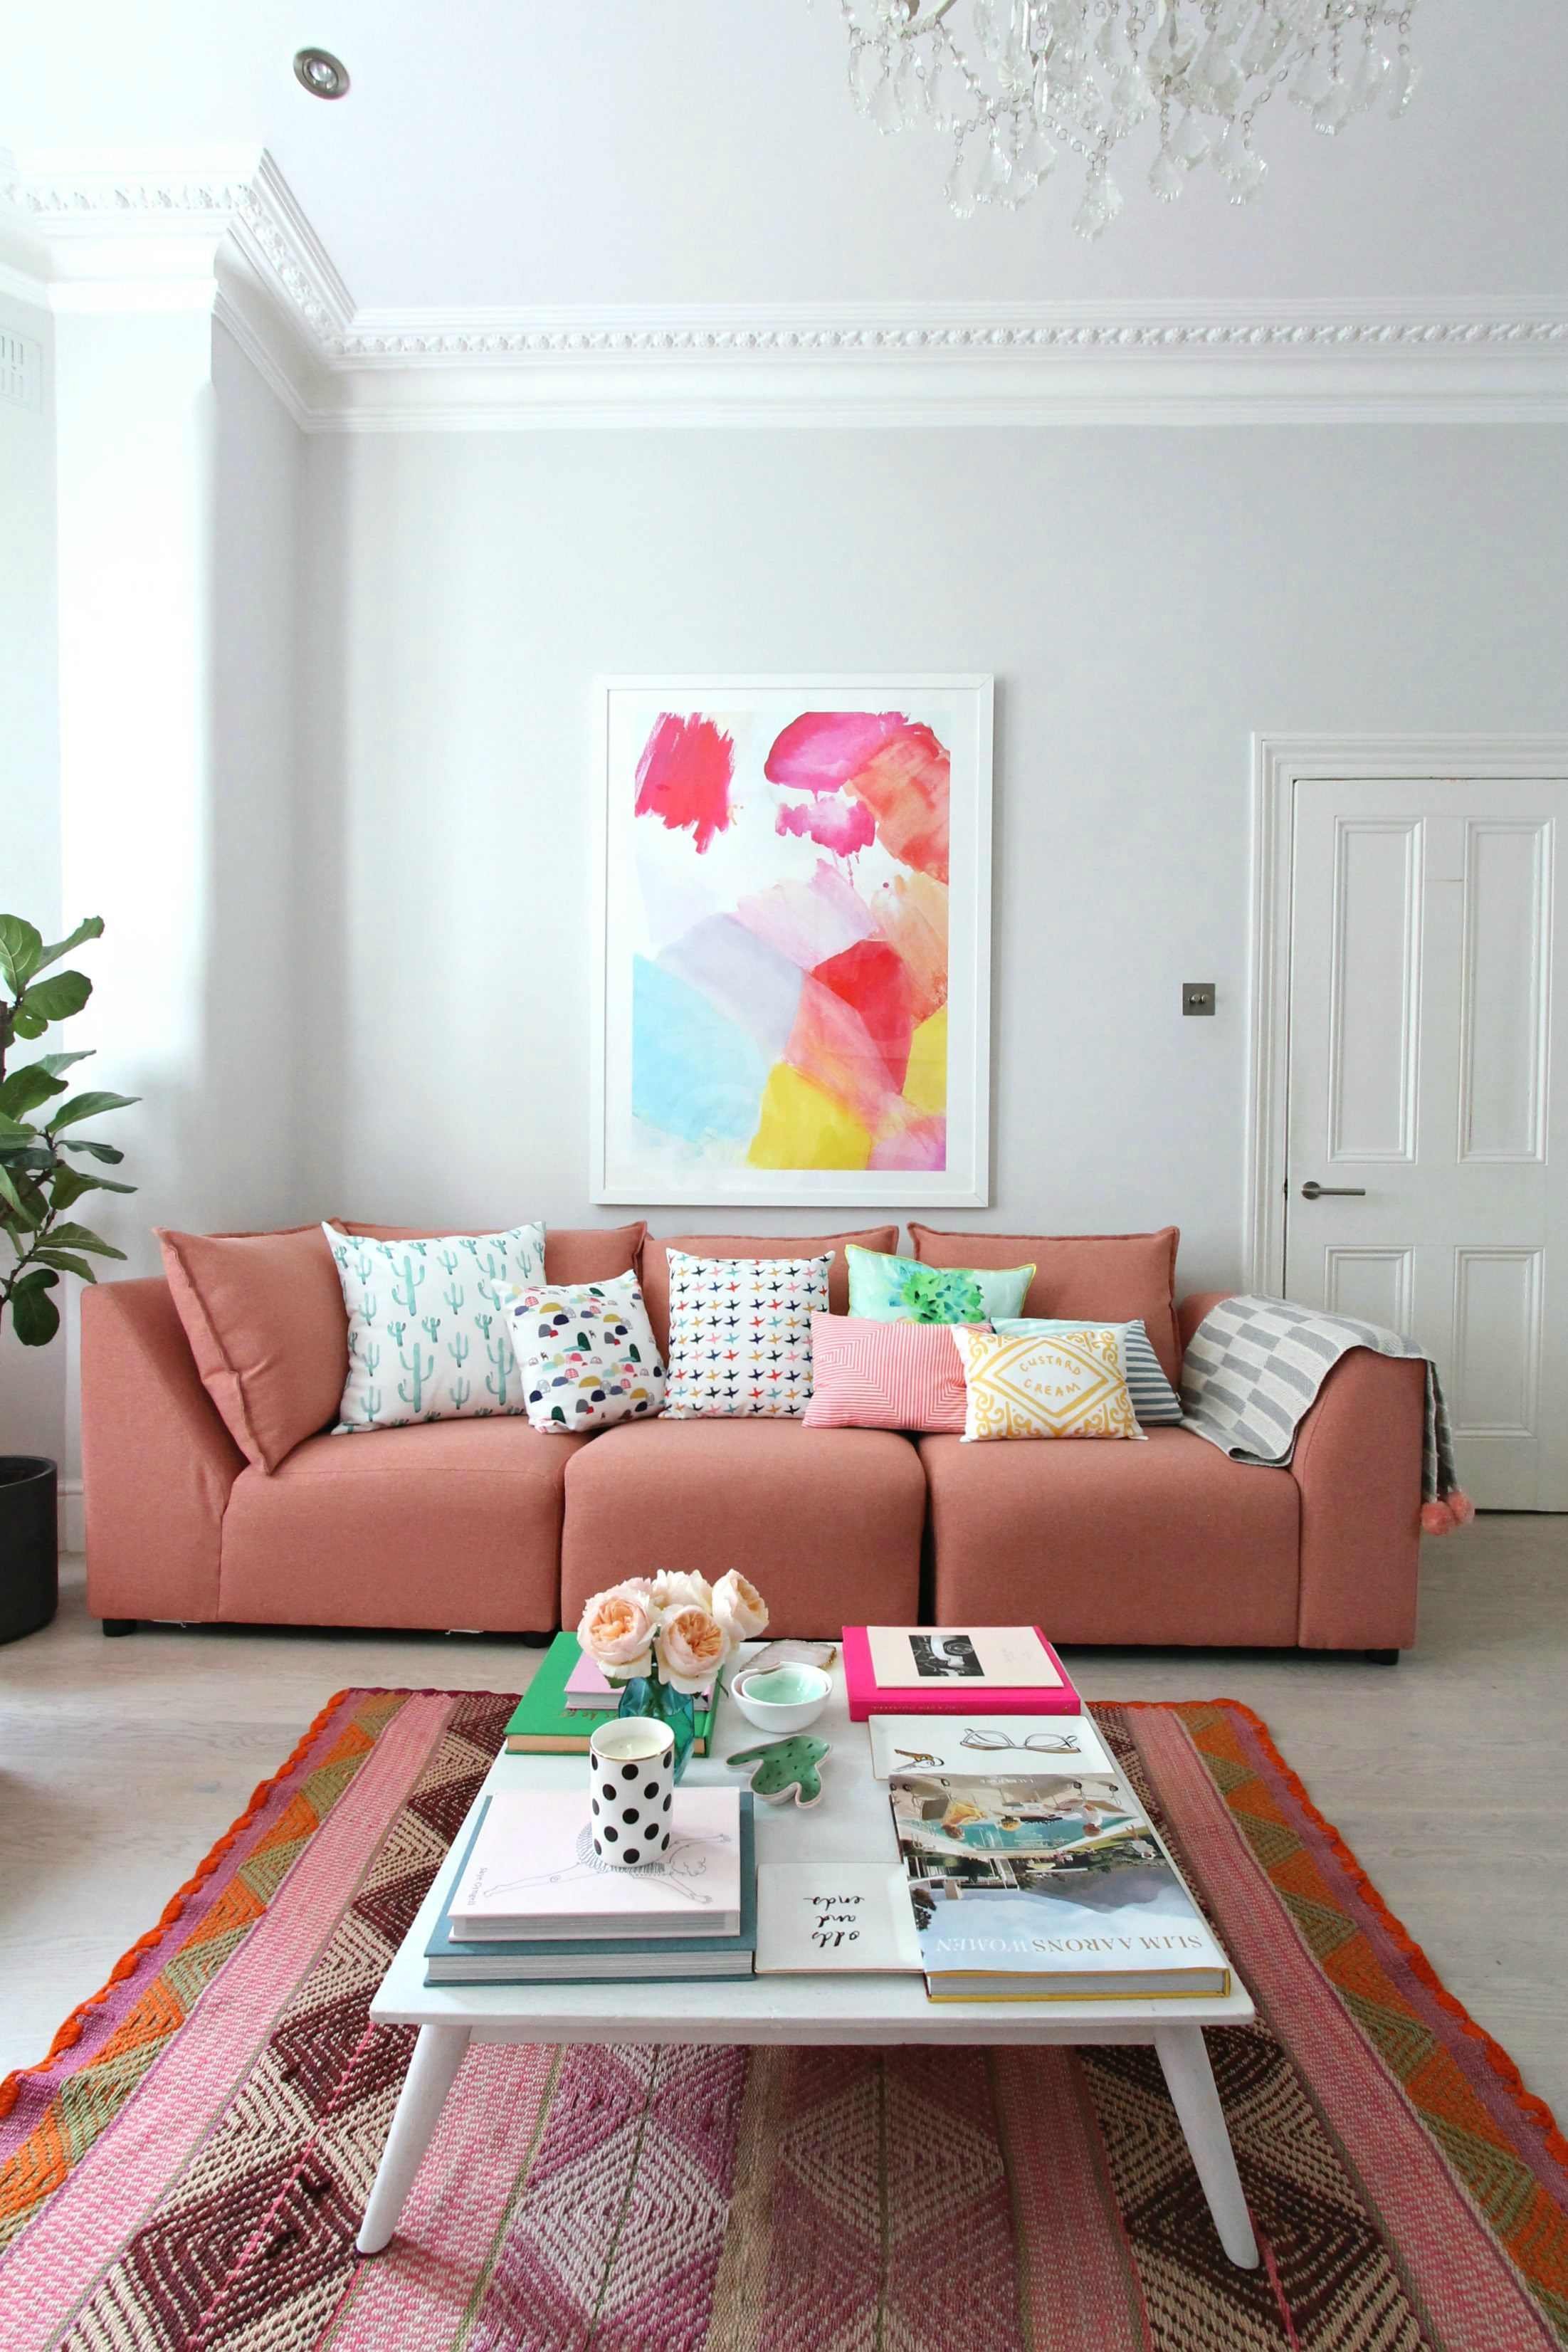 1f7004d3a6a How to style a pink sofa. My coral pink sofa from dfs | PILLOWS ...